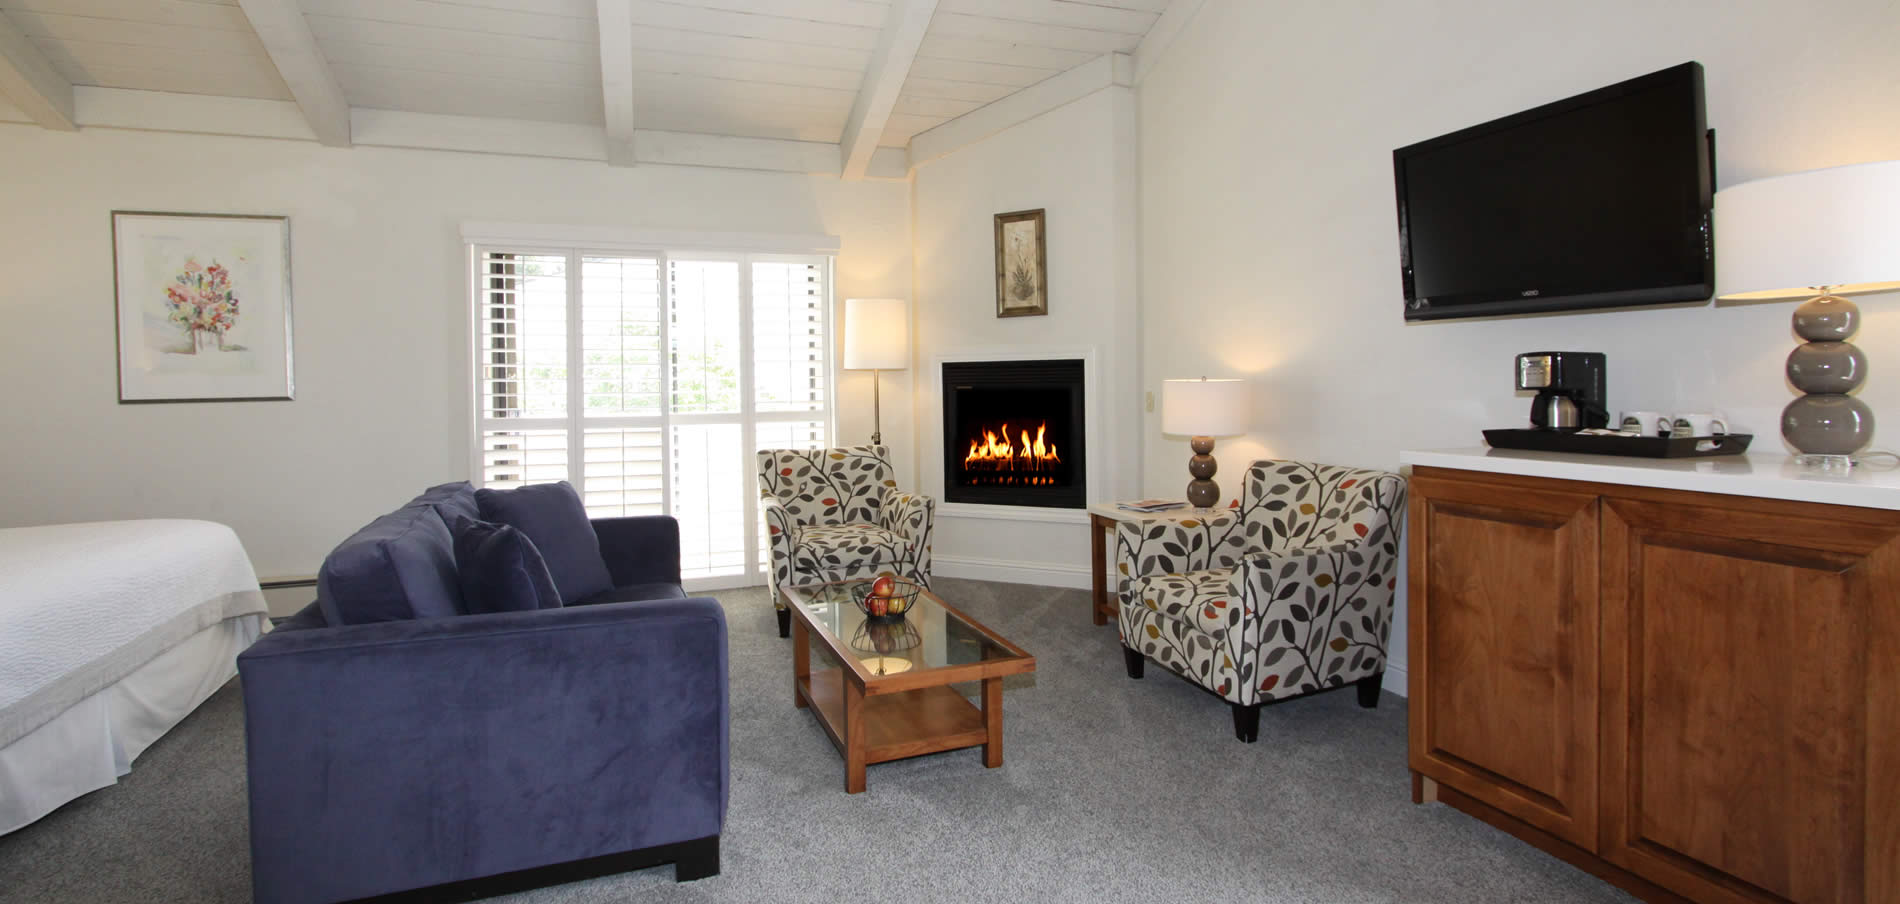 carmel hotel guest room with fireplace